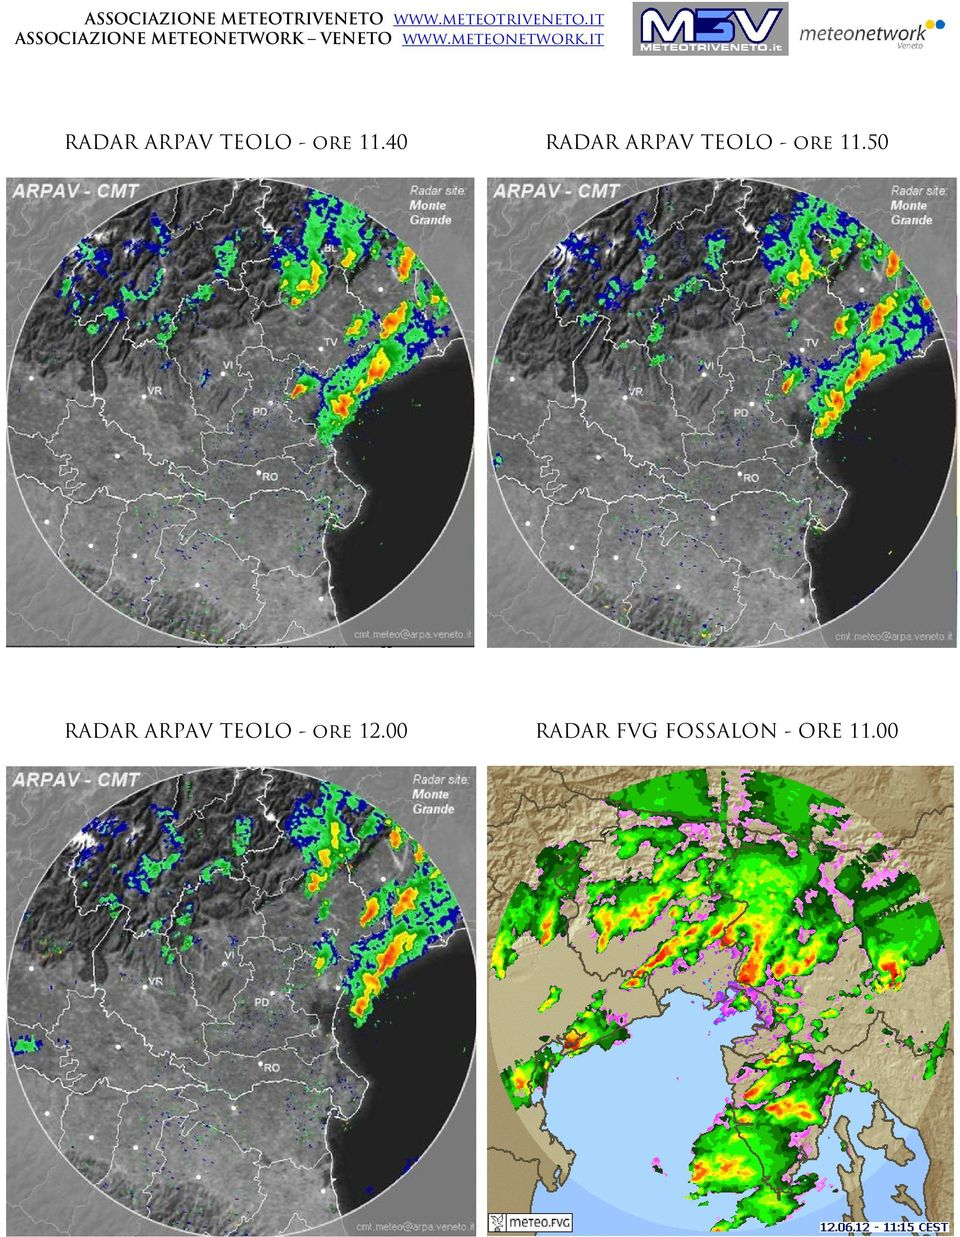 12.00 RADAR FVG FOSSALON -